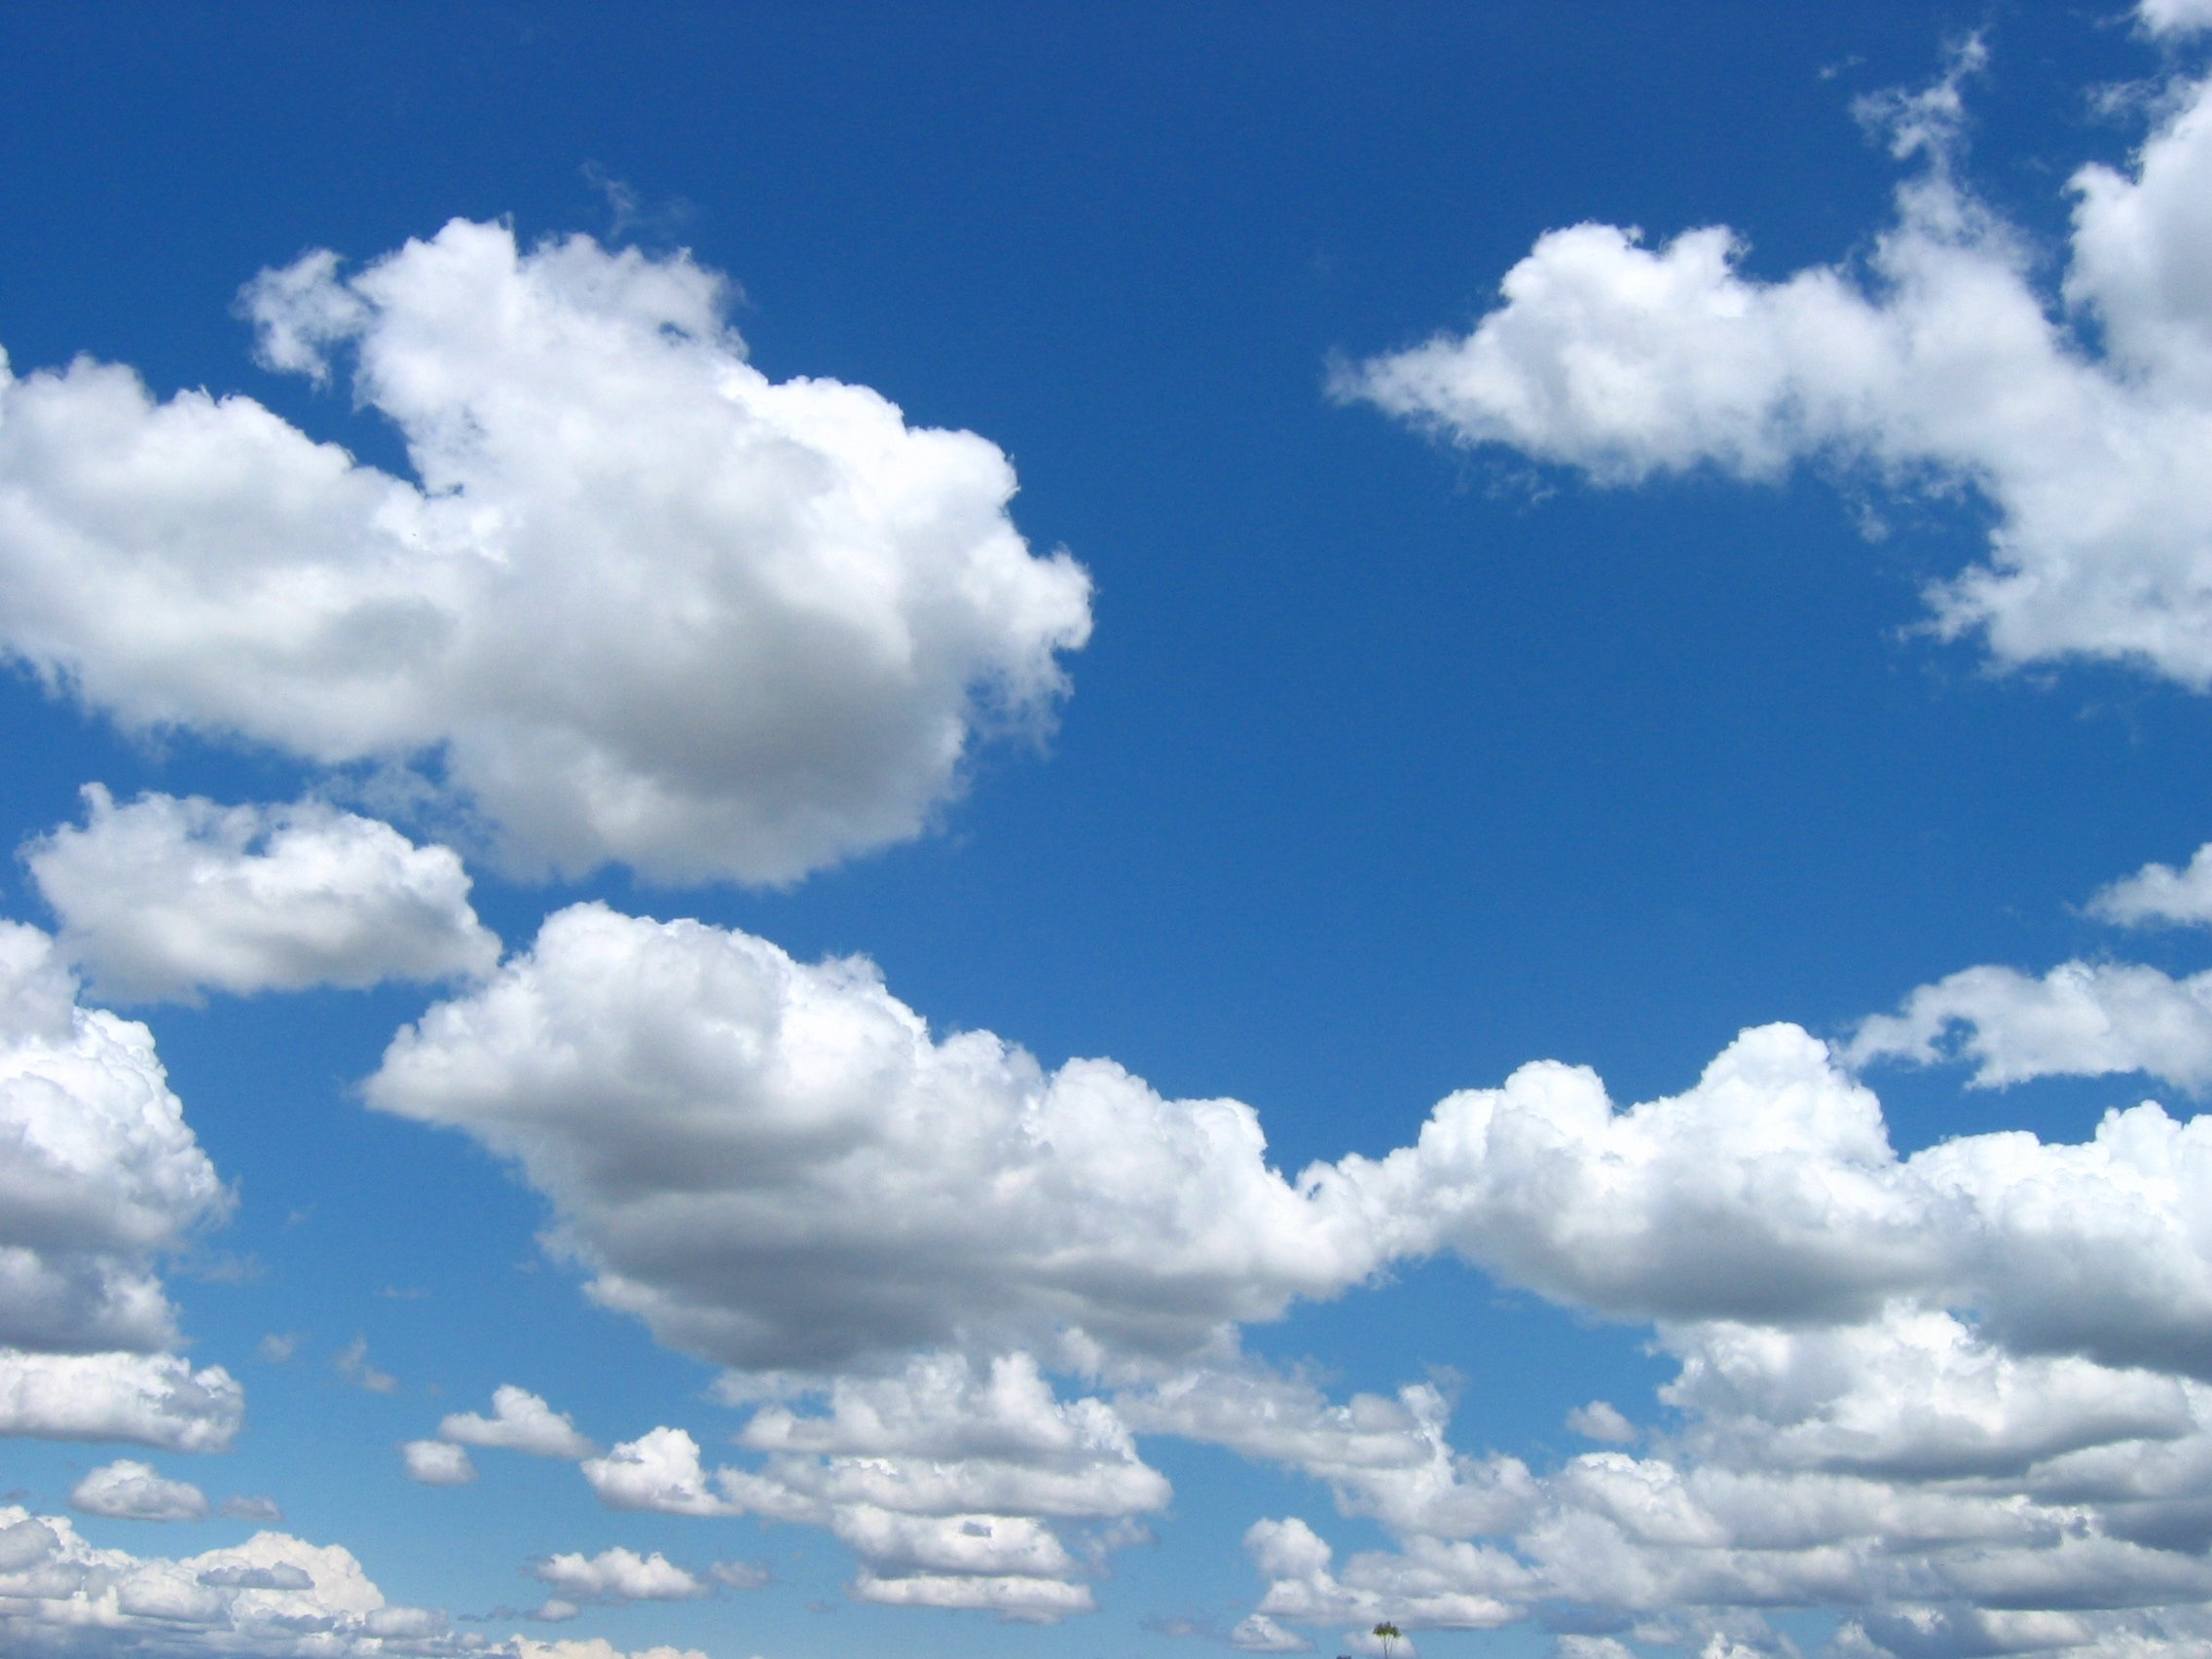 2272x1704px blue sky with clouds wallpaper - wallpapersafari